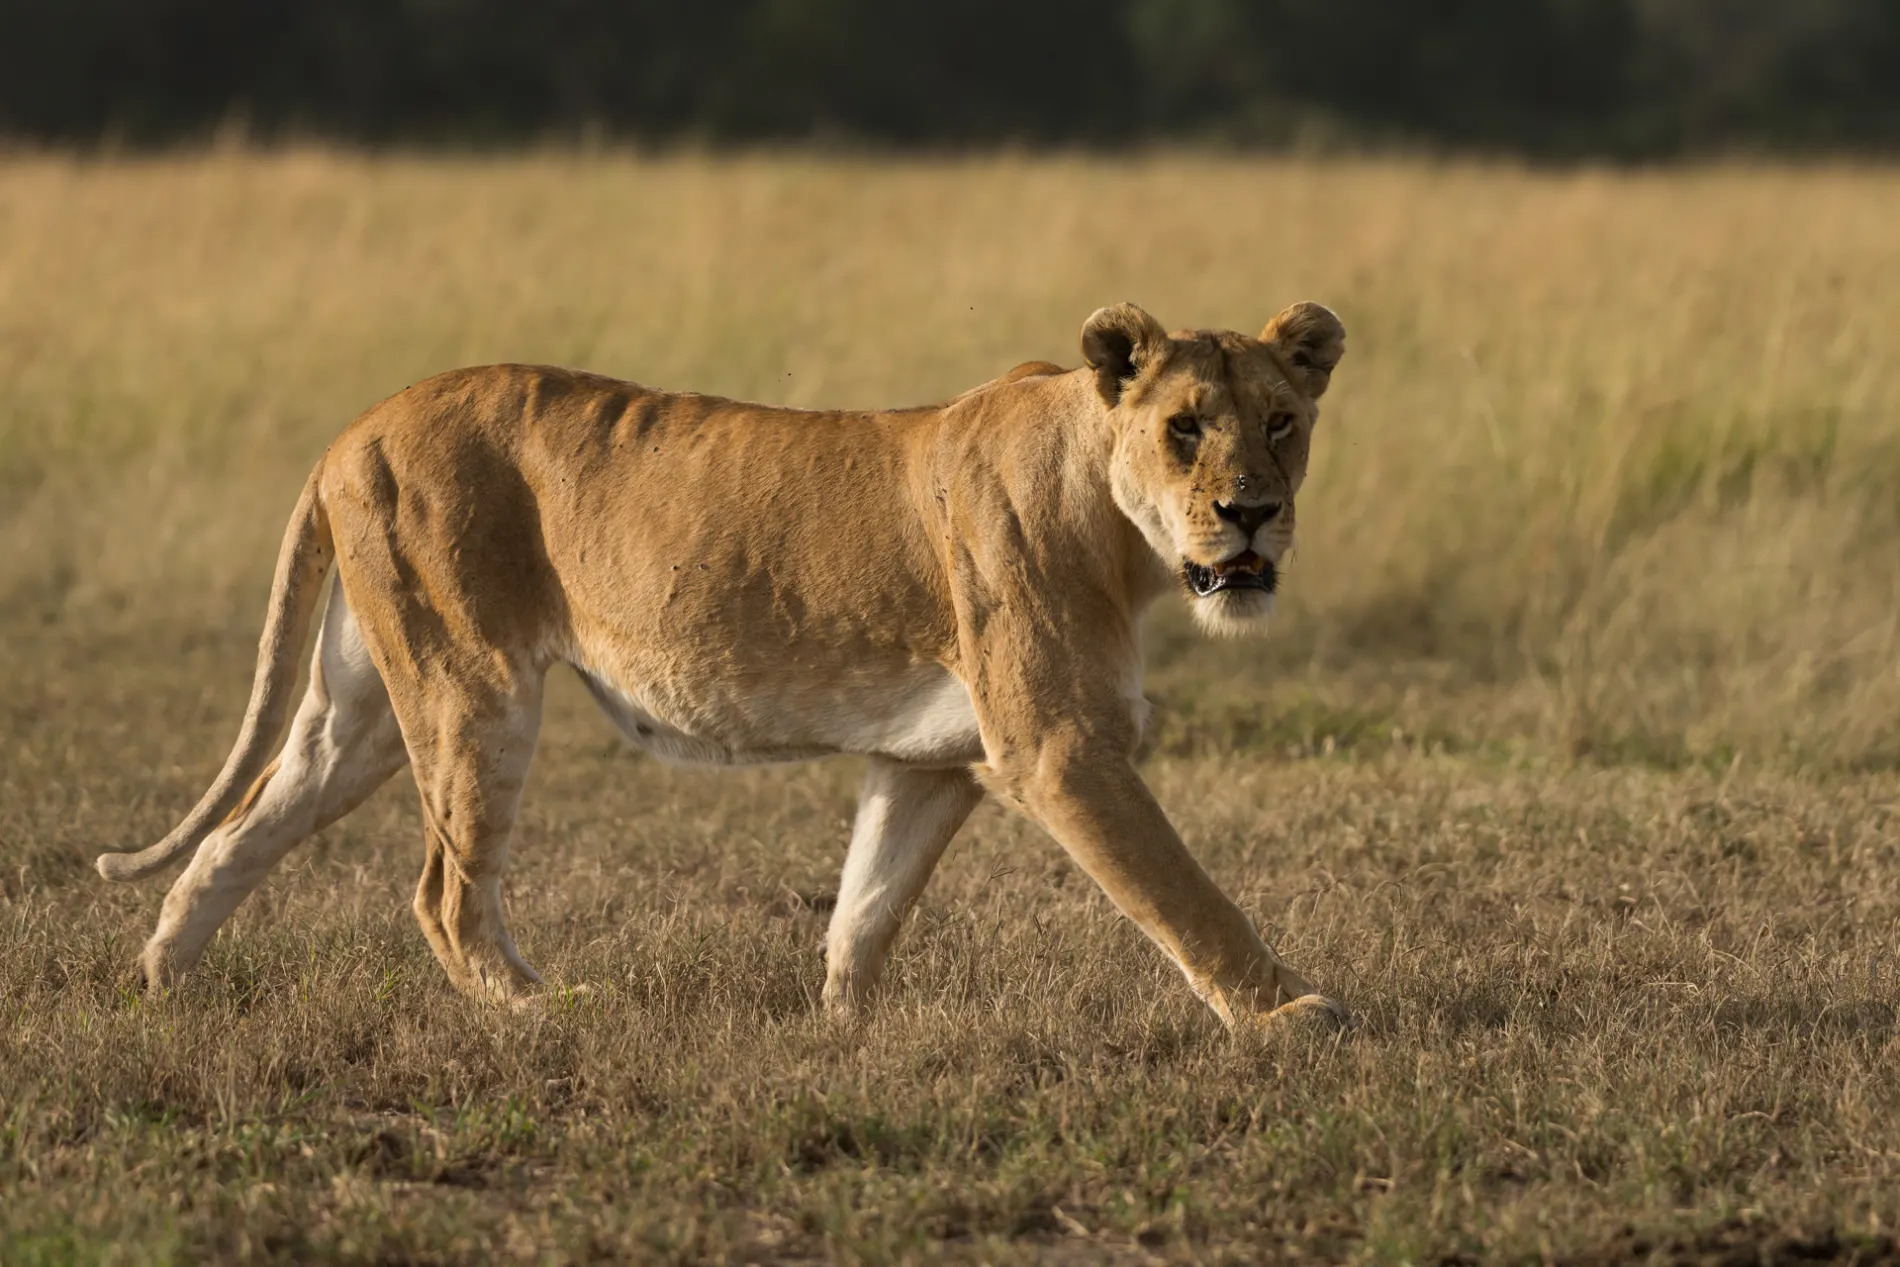 Lioness no turf on tail